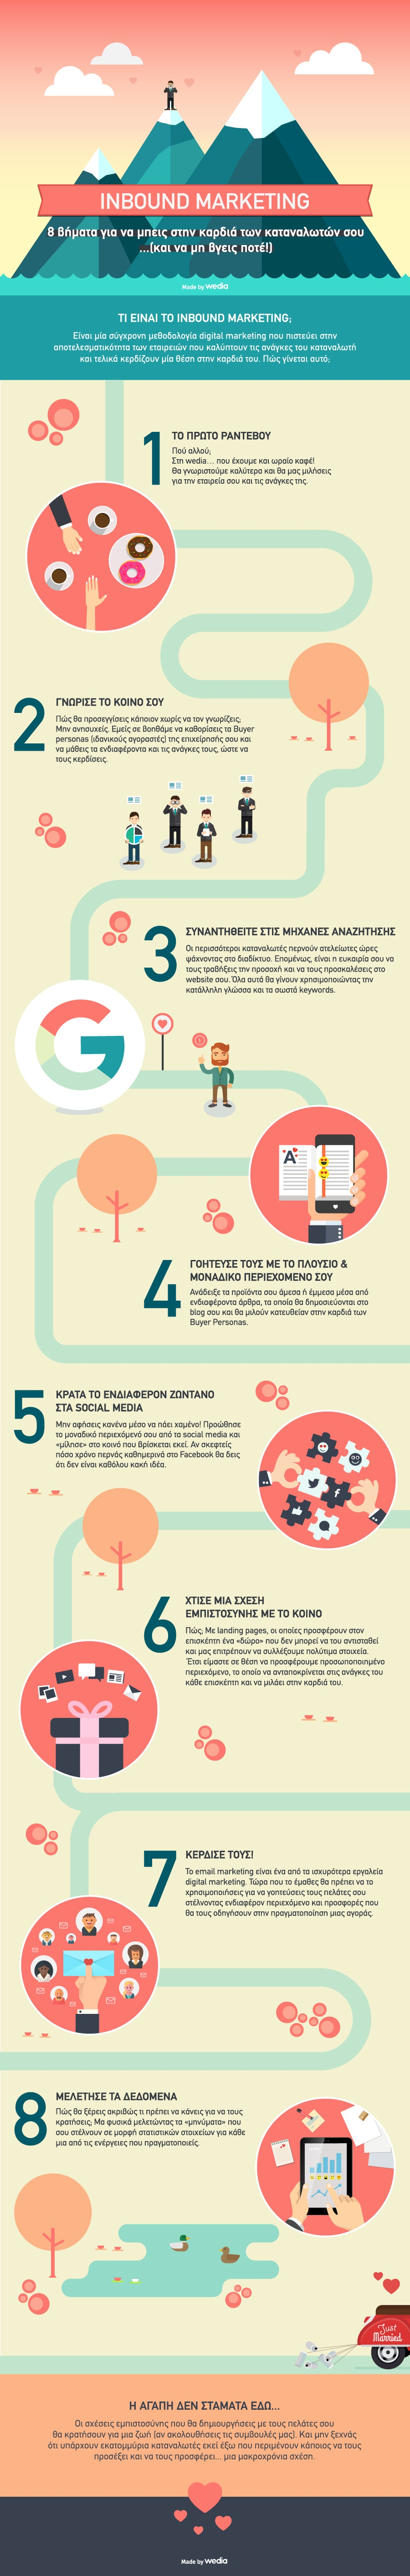 wedia infographic inbound marketing